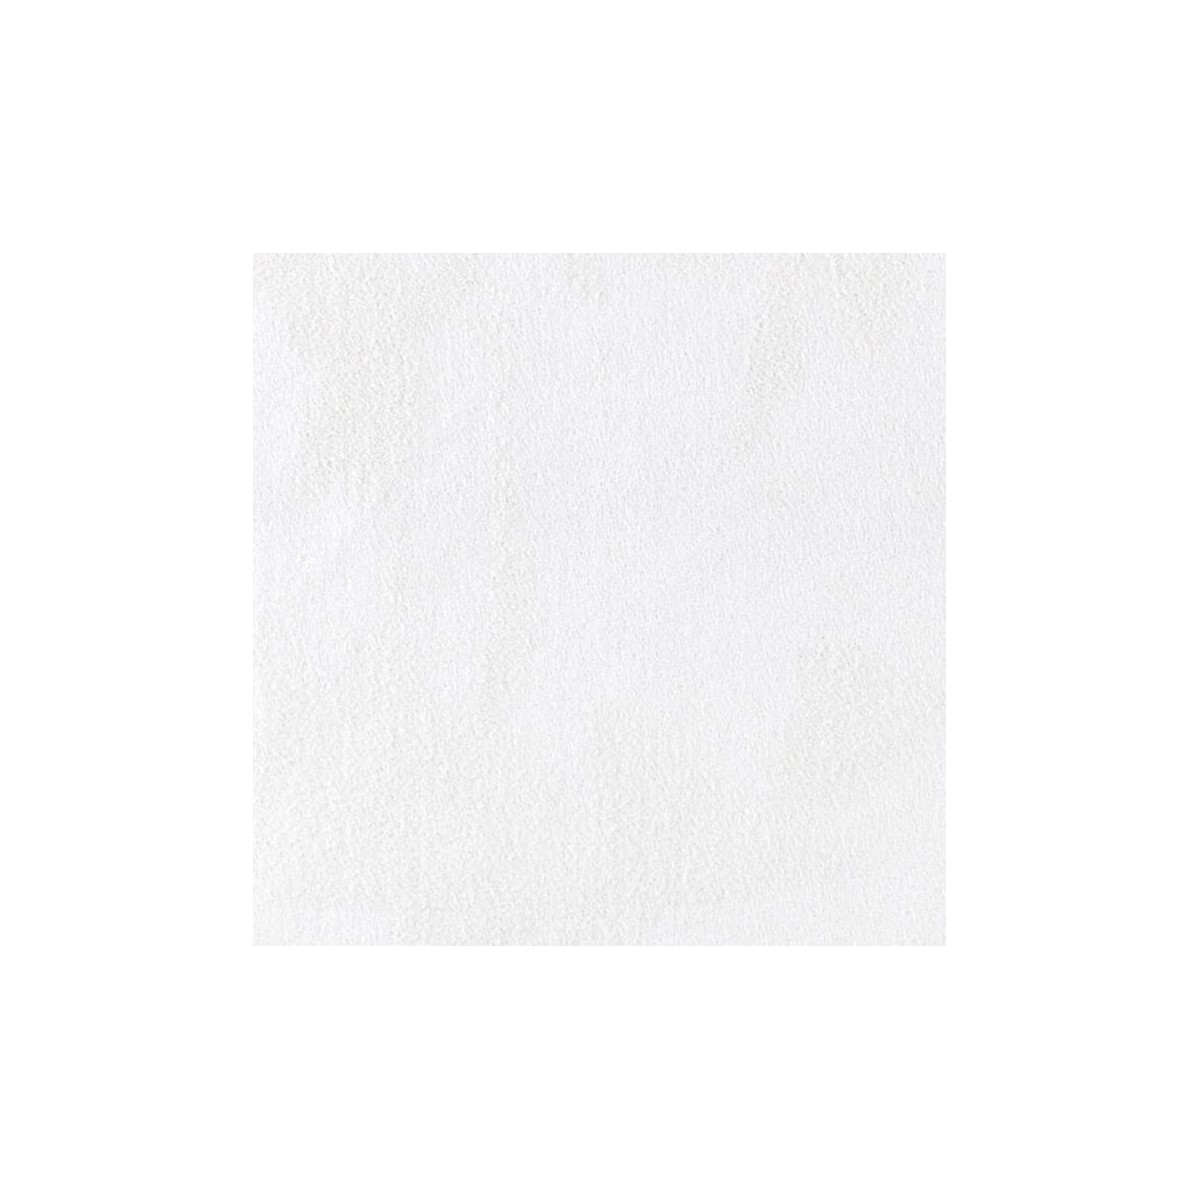 Ultrasuede WHITE 225 x 230 mm 1pz